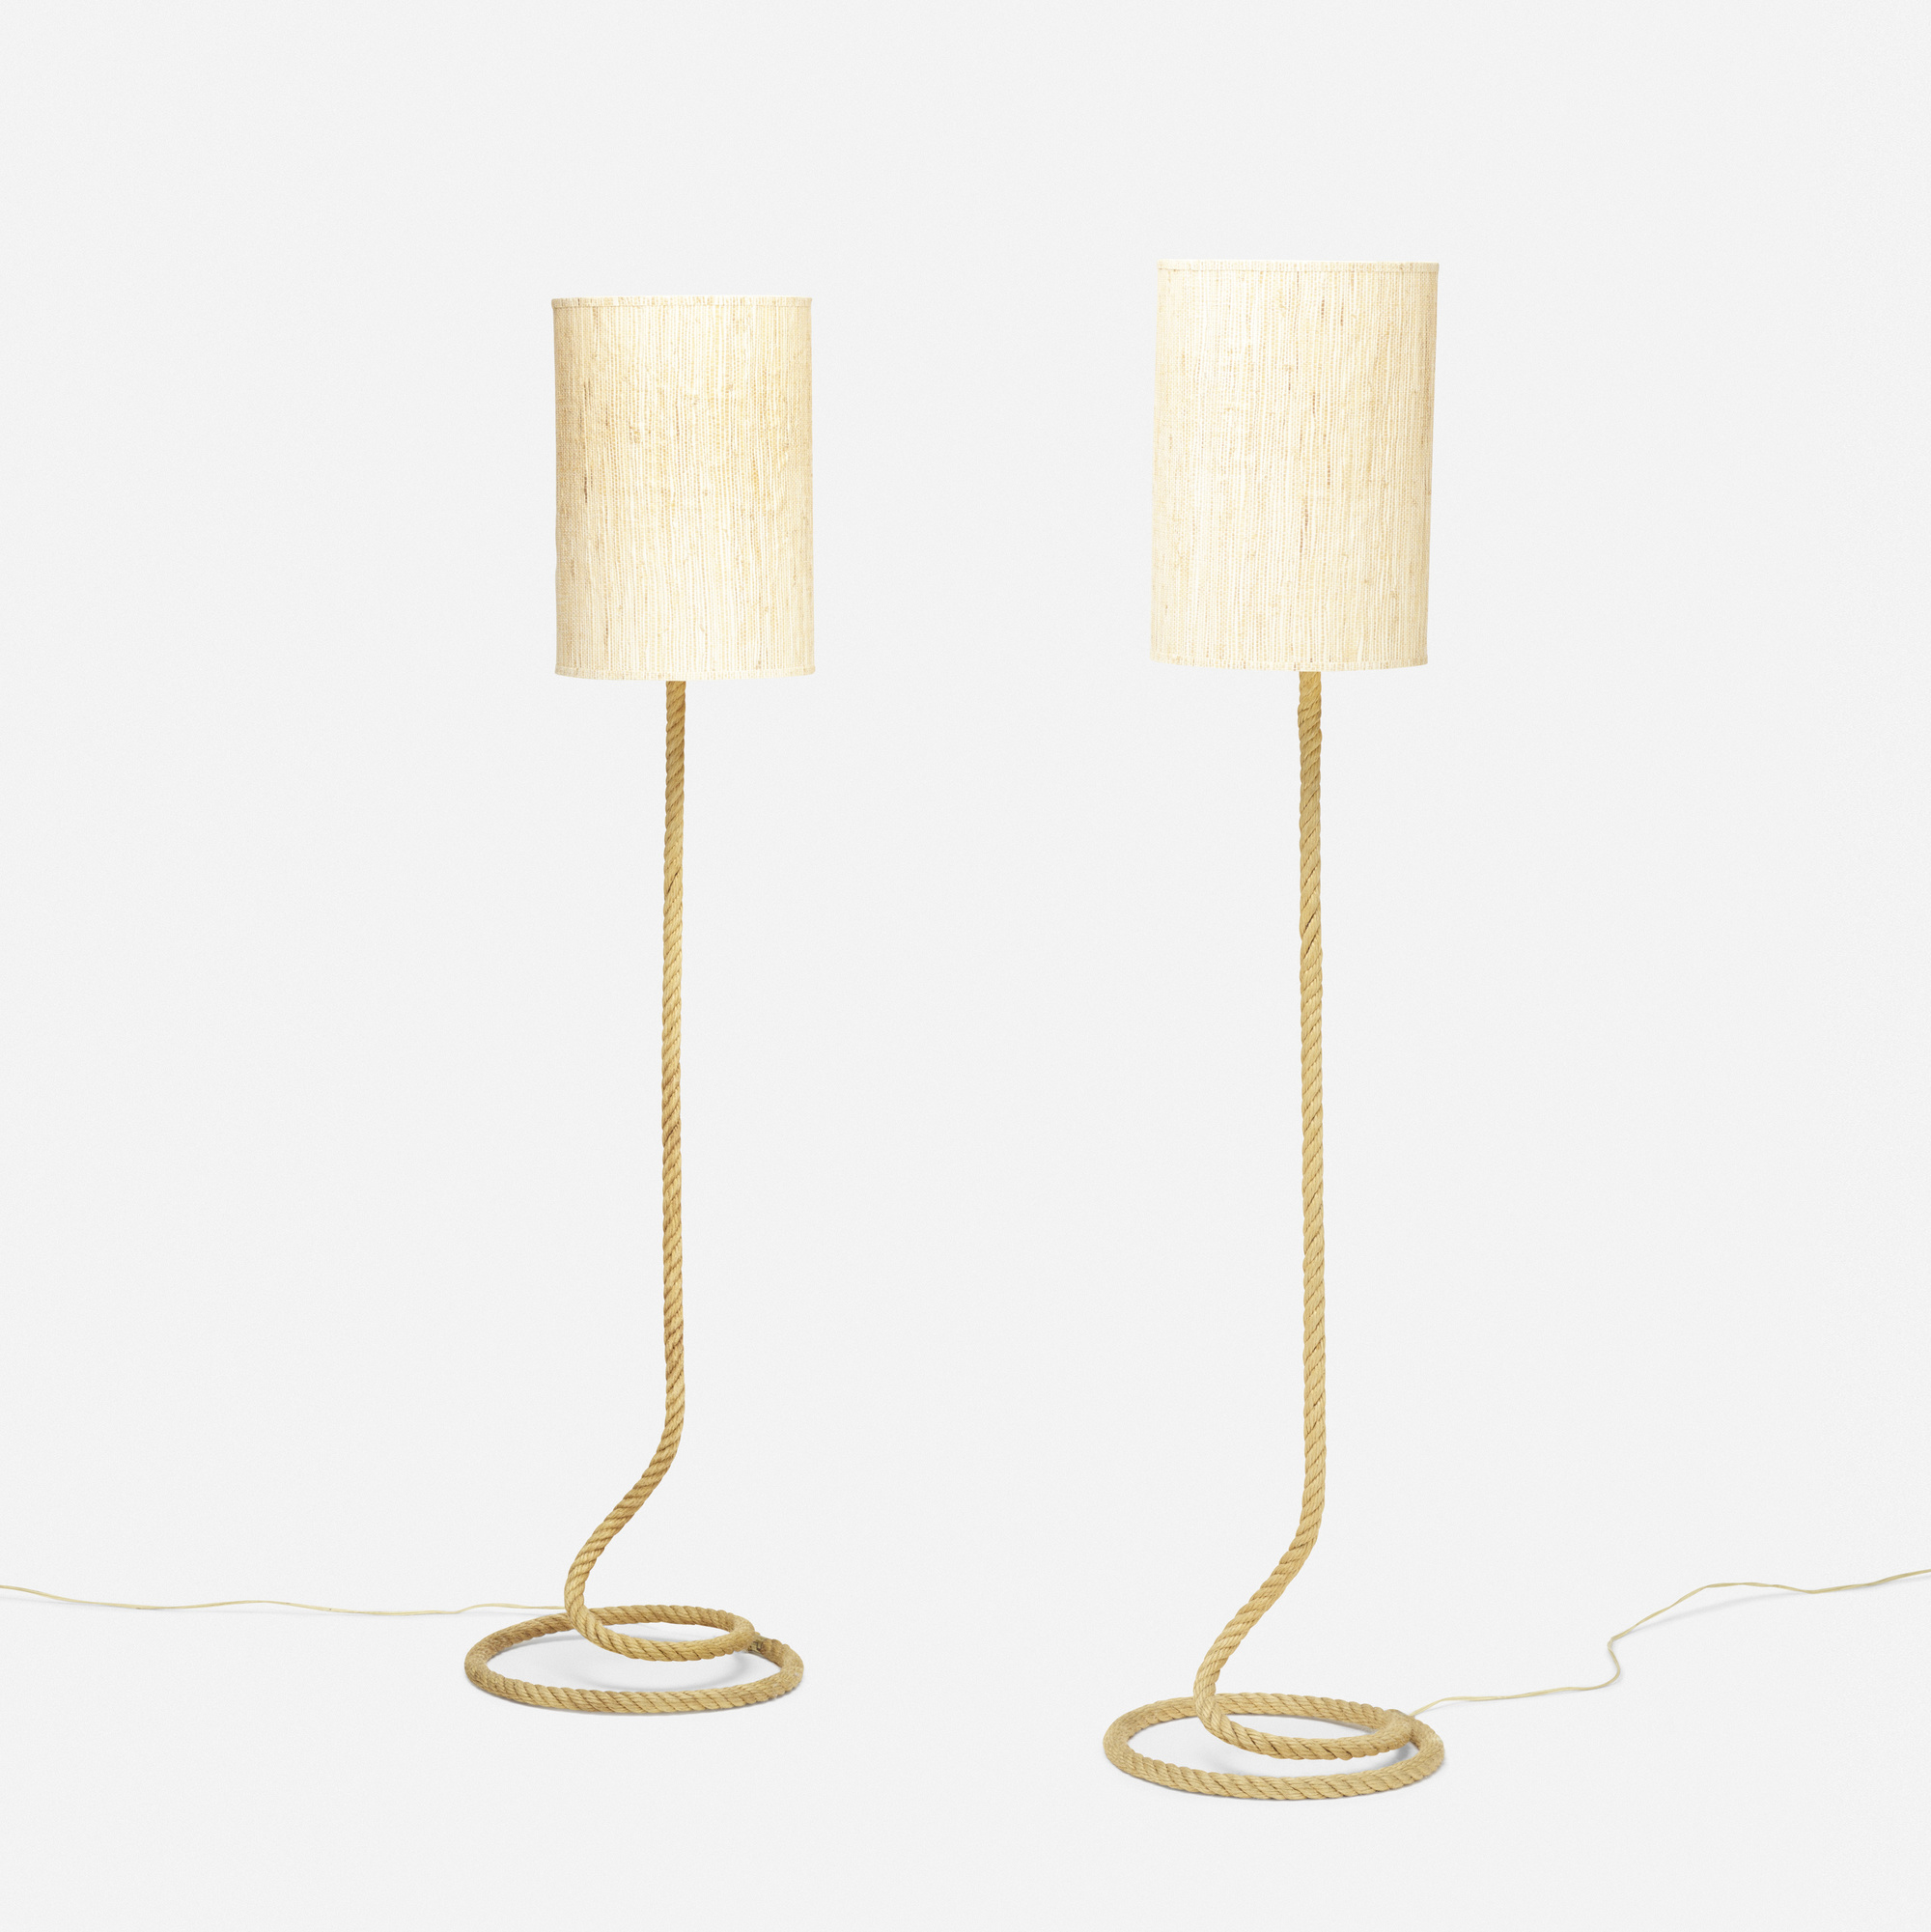 166: Adrien Audoux and Frida Minet / floor lamps, pair (1 of 3)